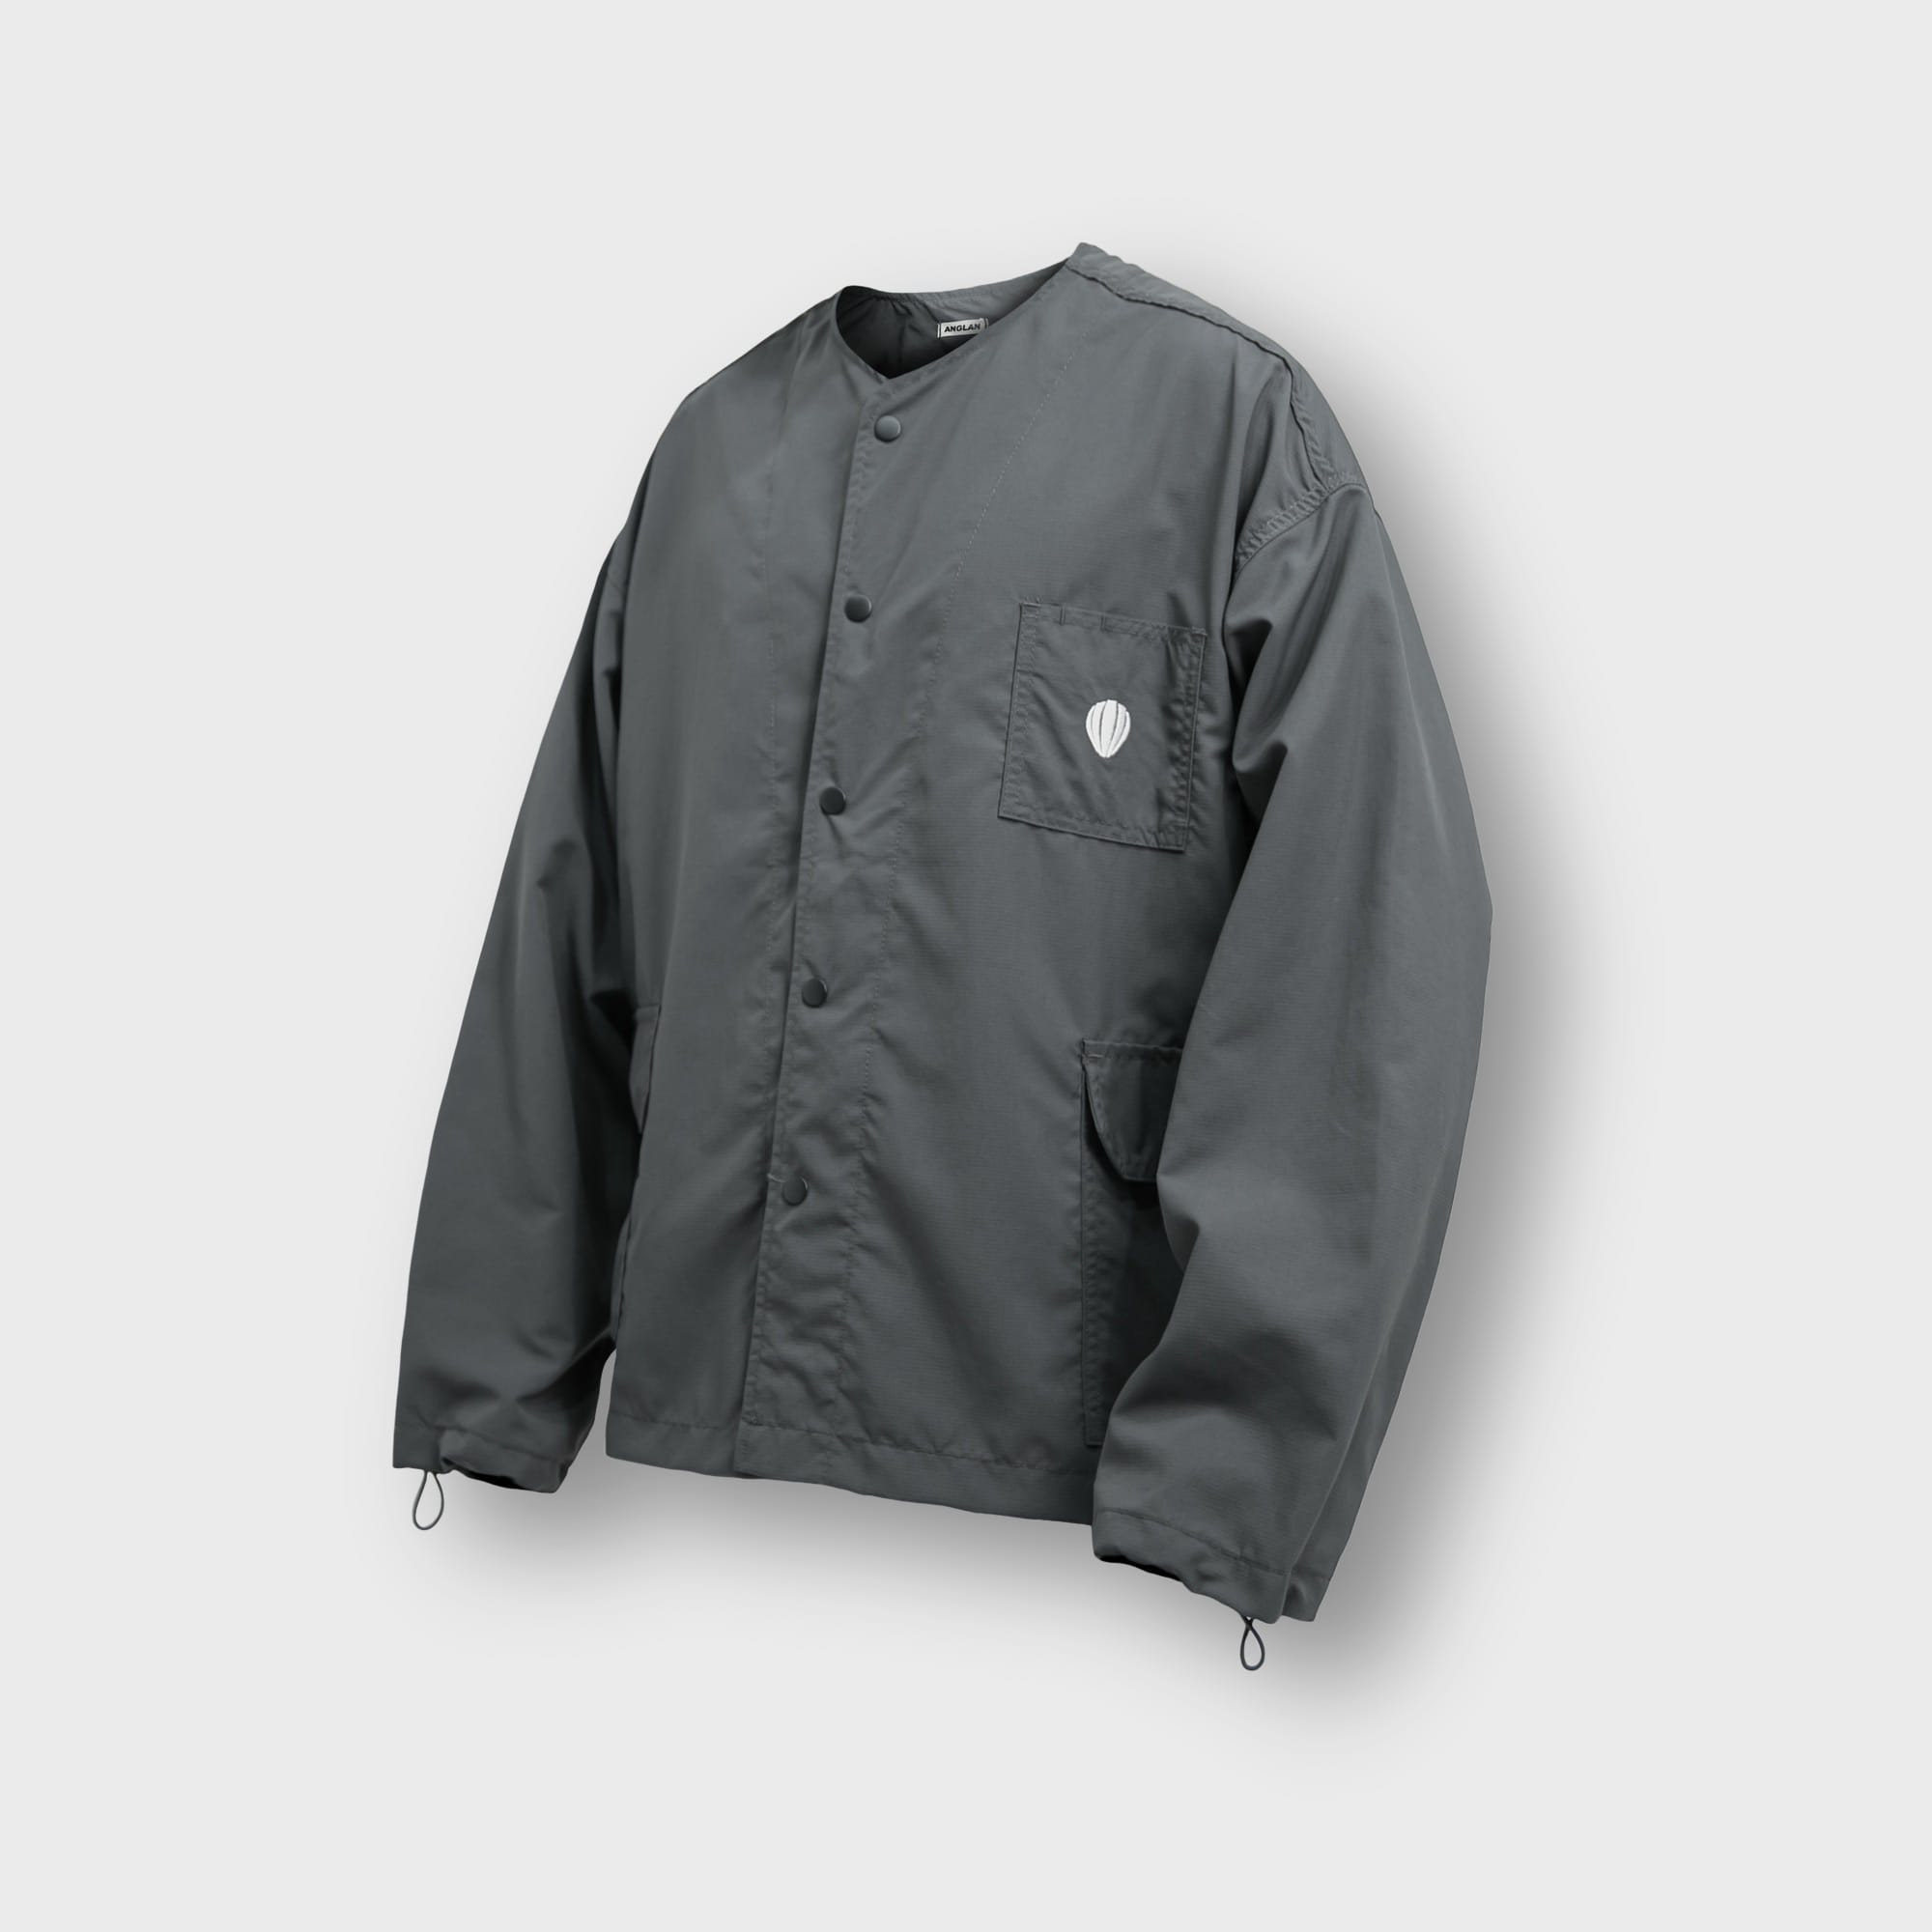 [AG] Rib Nylon Public Jacket - Grey